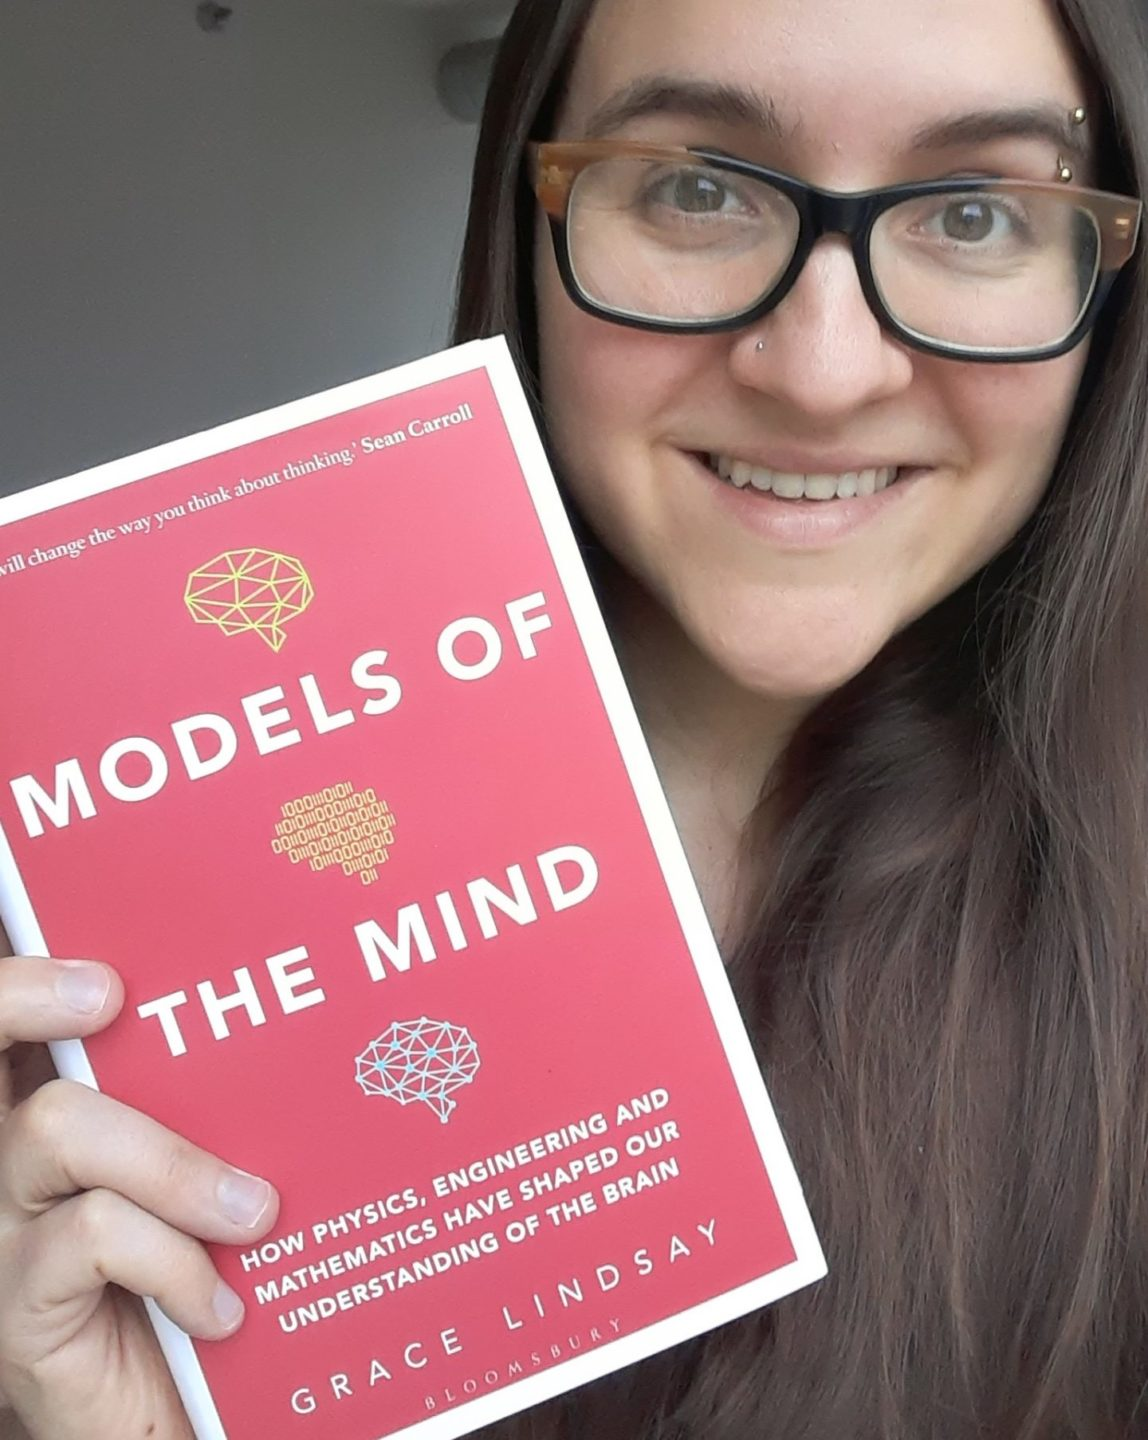 The author with her book